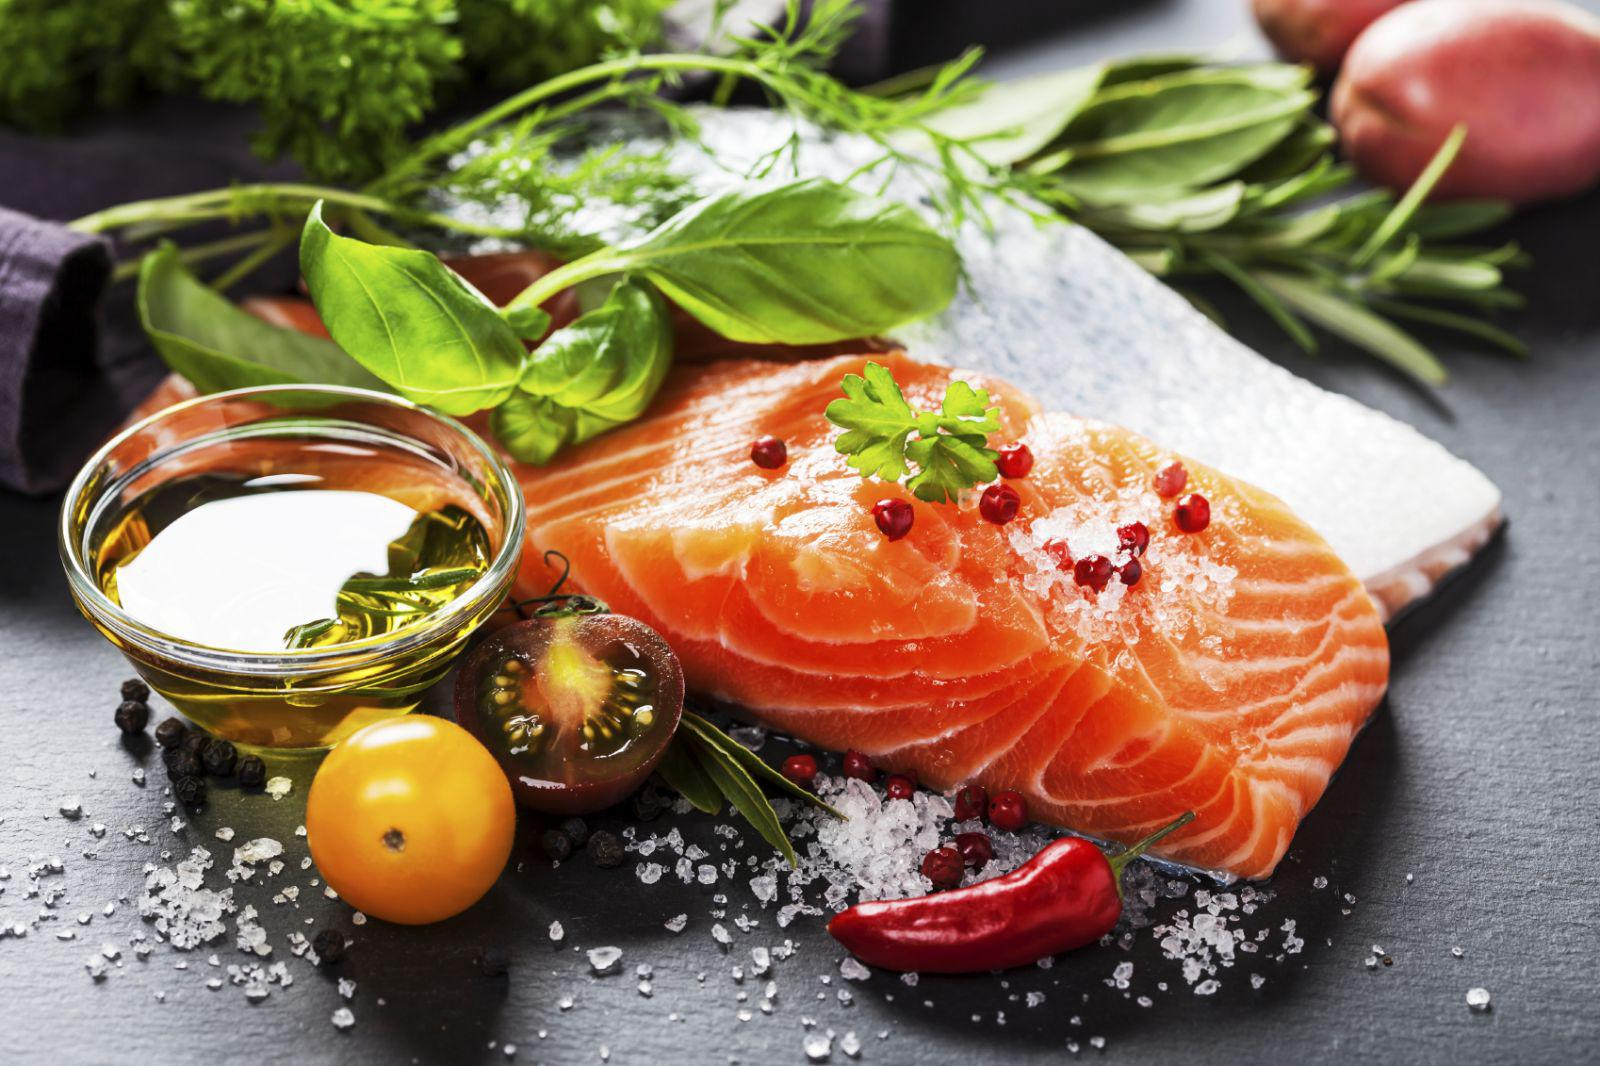 Fish is high in Omega 3 Fat